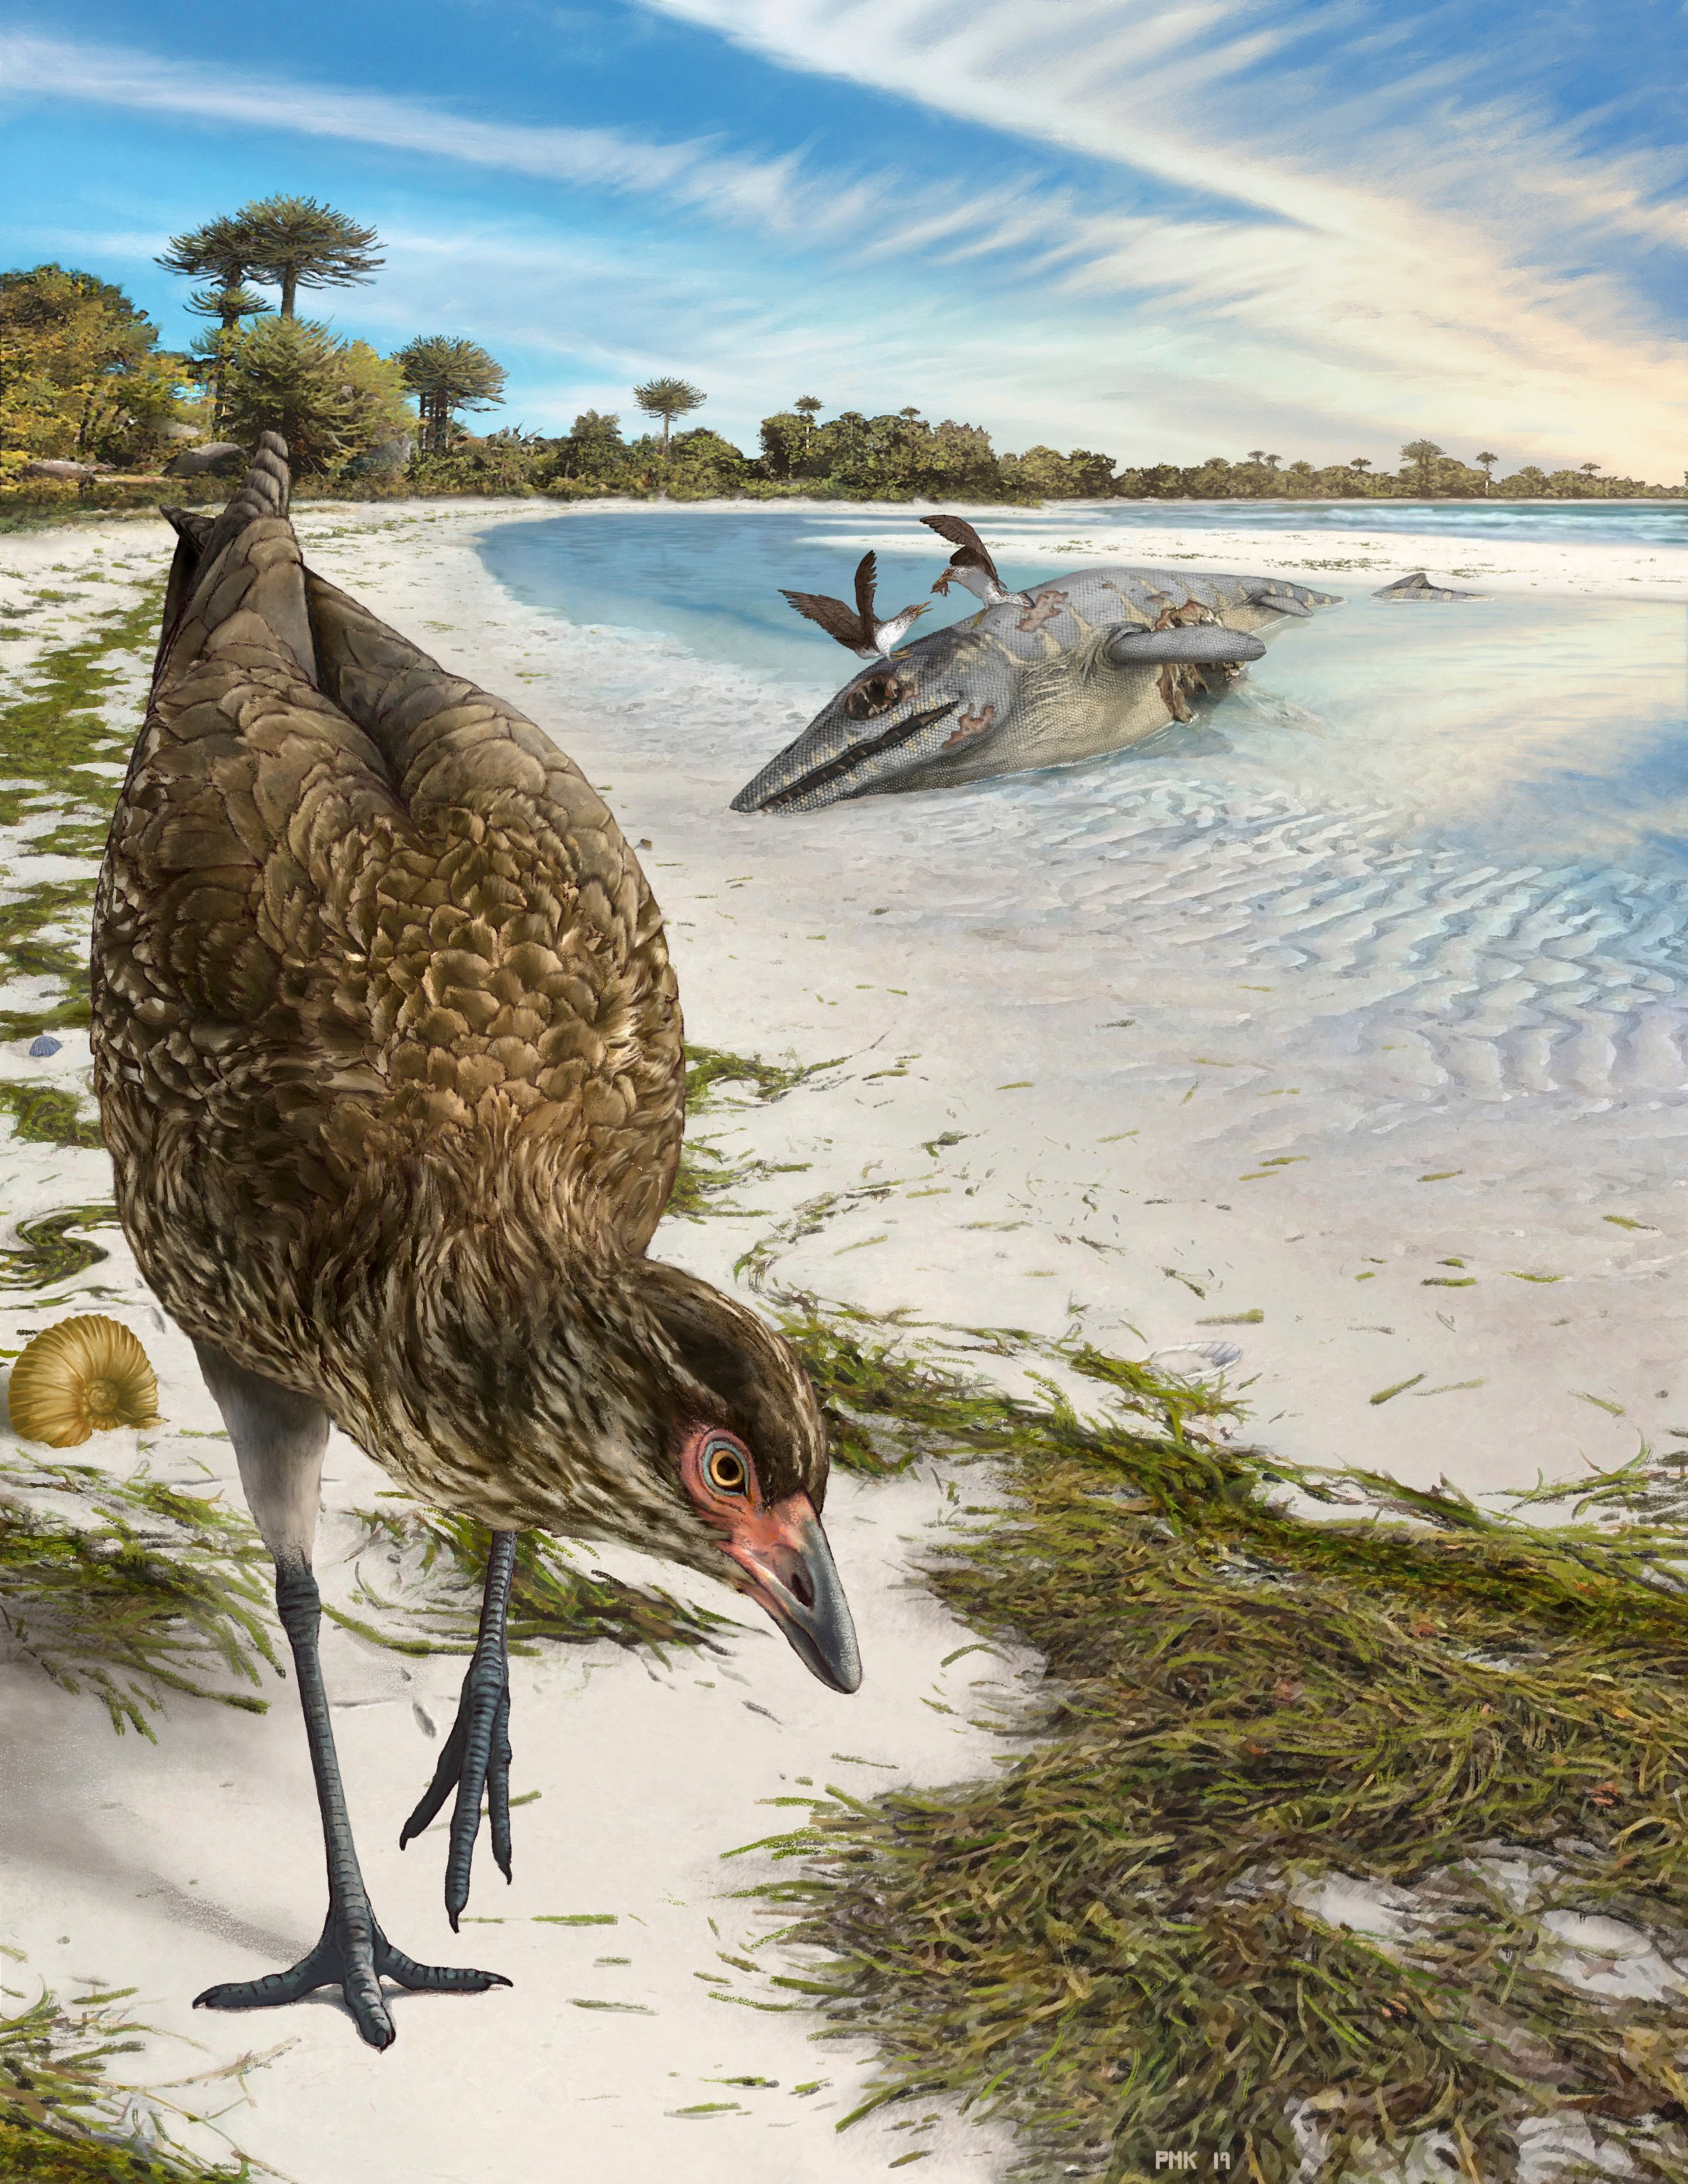 This illustration by Phillip Krzeminski provided by researchers in March 2020 shows the world's oldest modern bird, Asteriornis maastrichtensis, nicknamed the